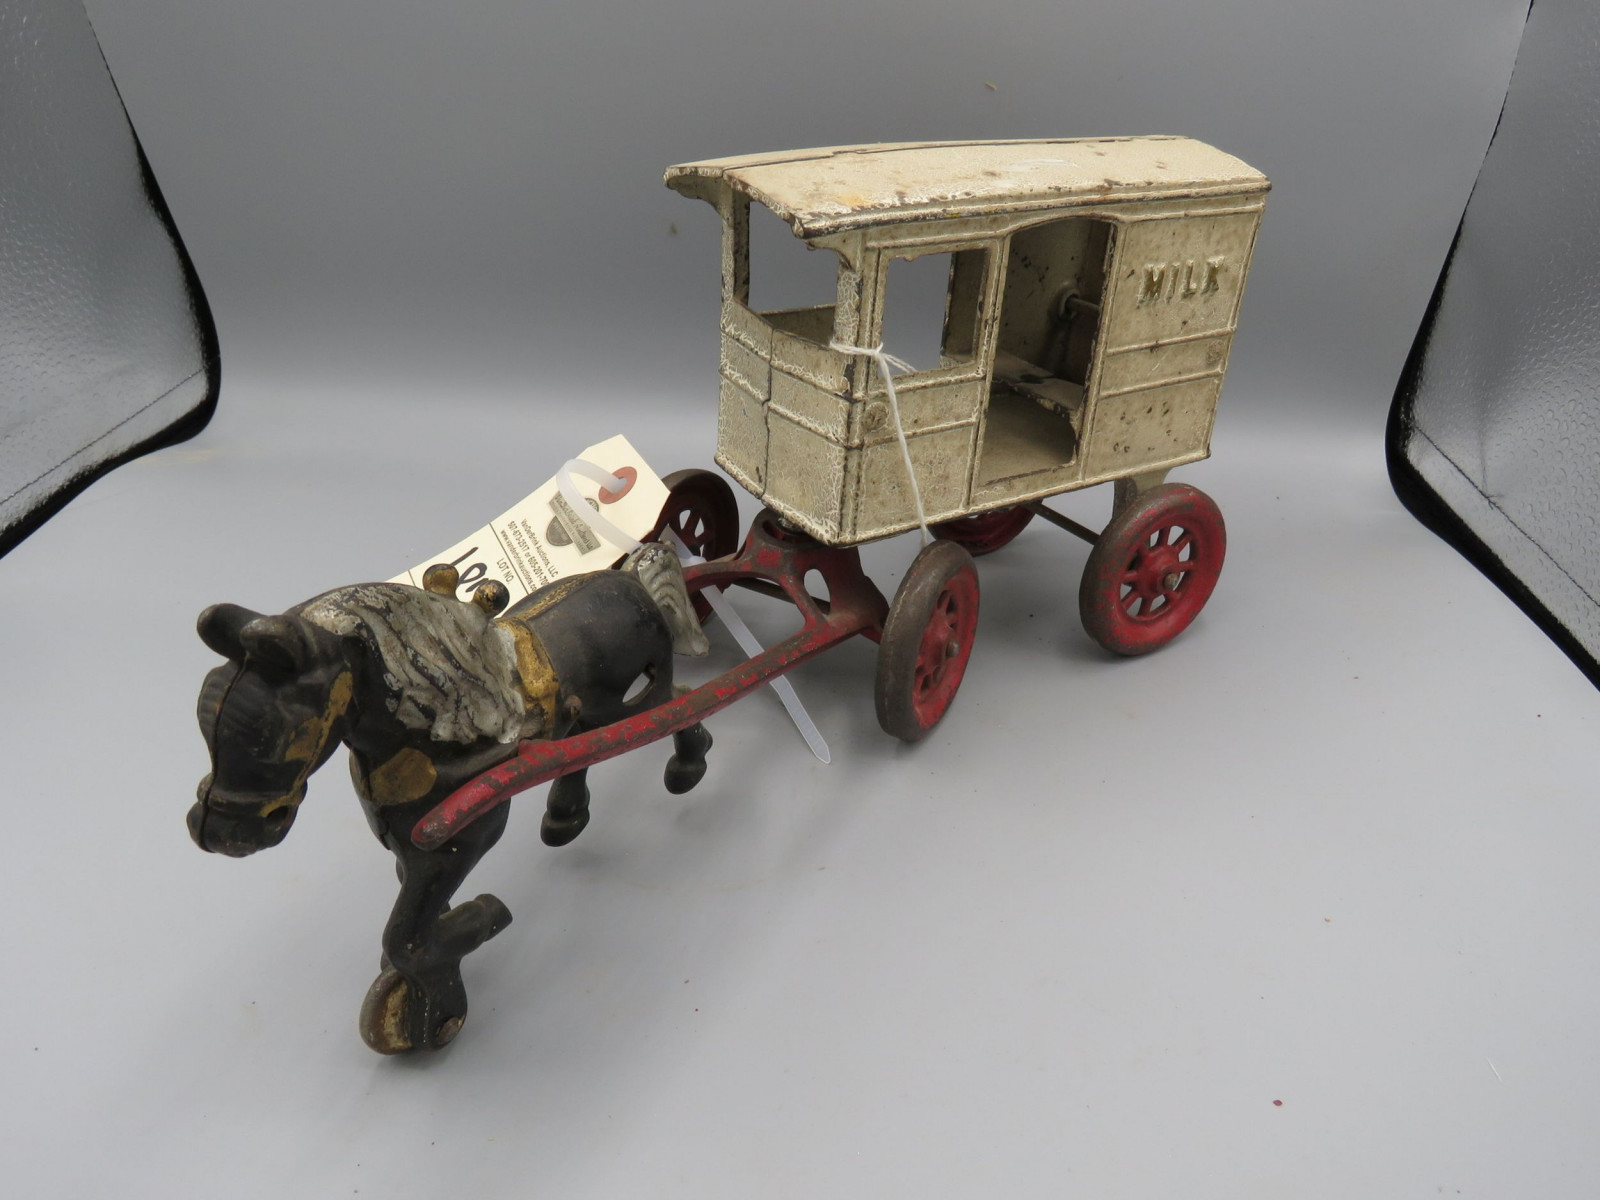 Vintage Cast Iron Milk Cart with Horse Approx. 10 inches - Image 2